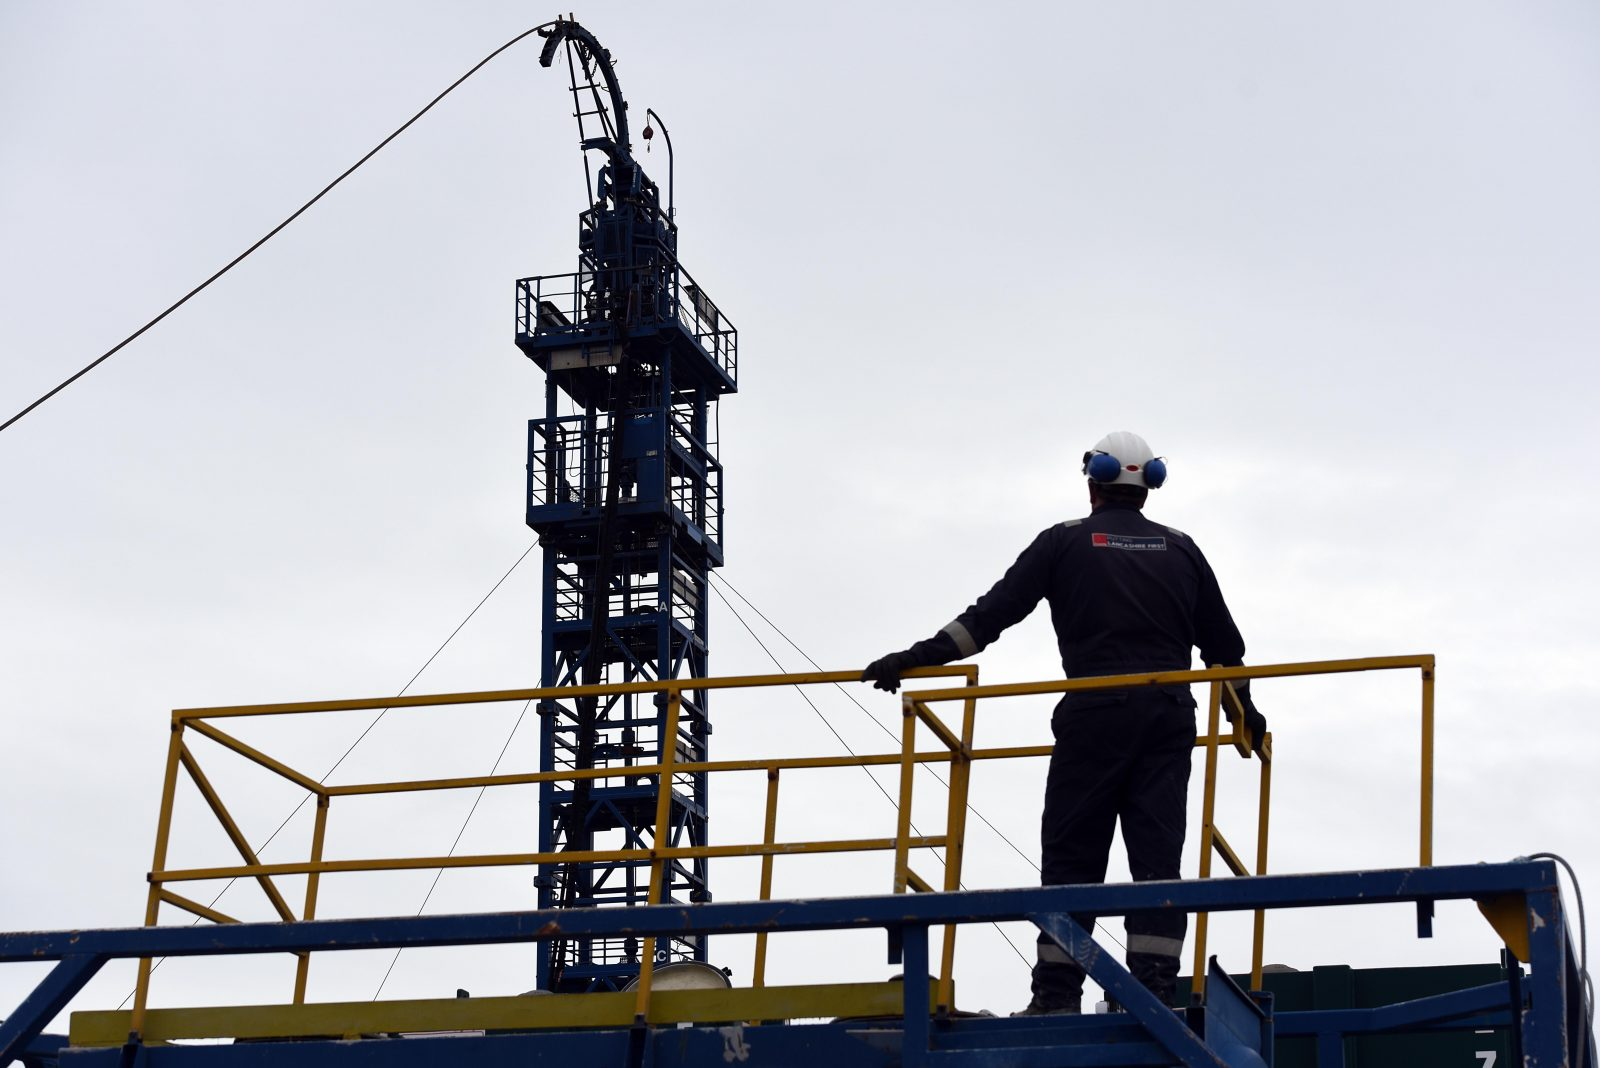 pnr gooseneck Cuadrilla Resources